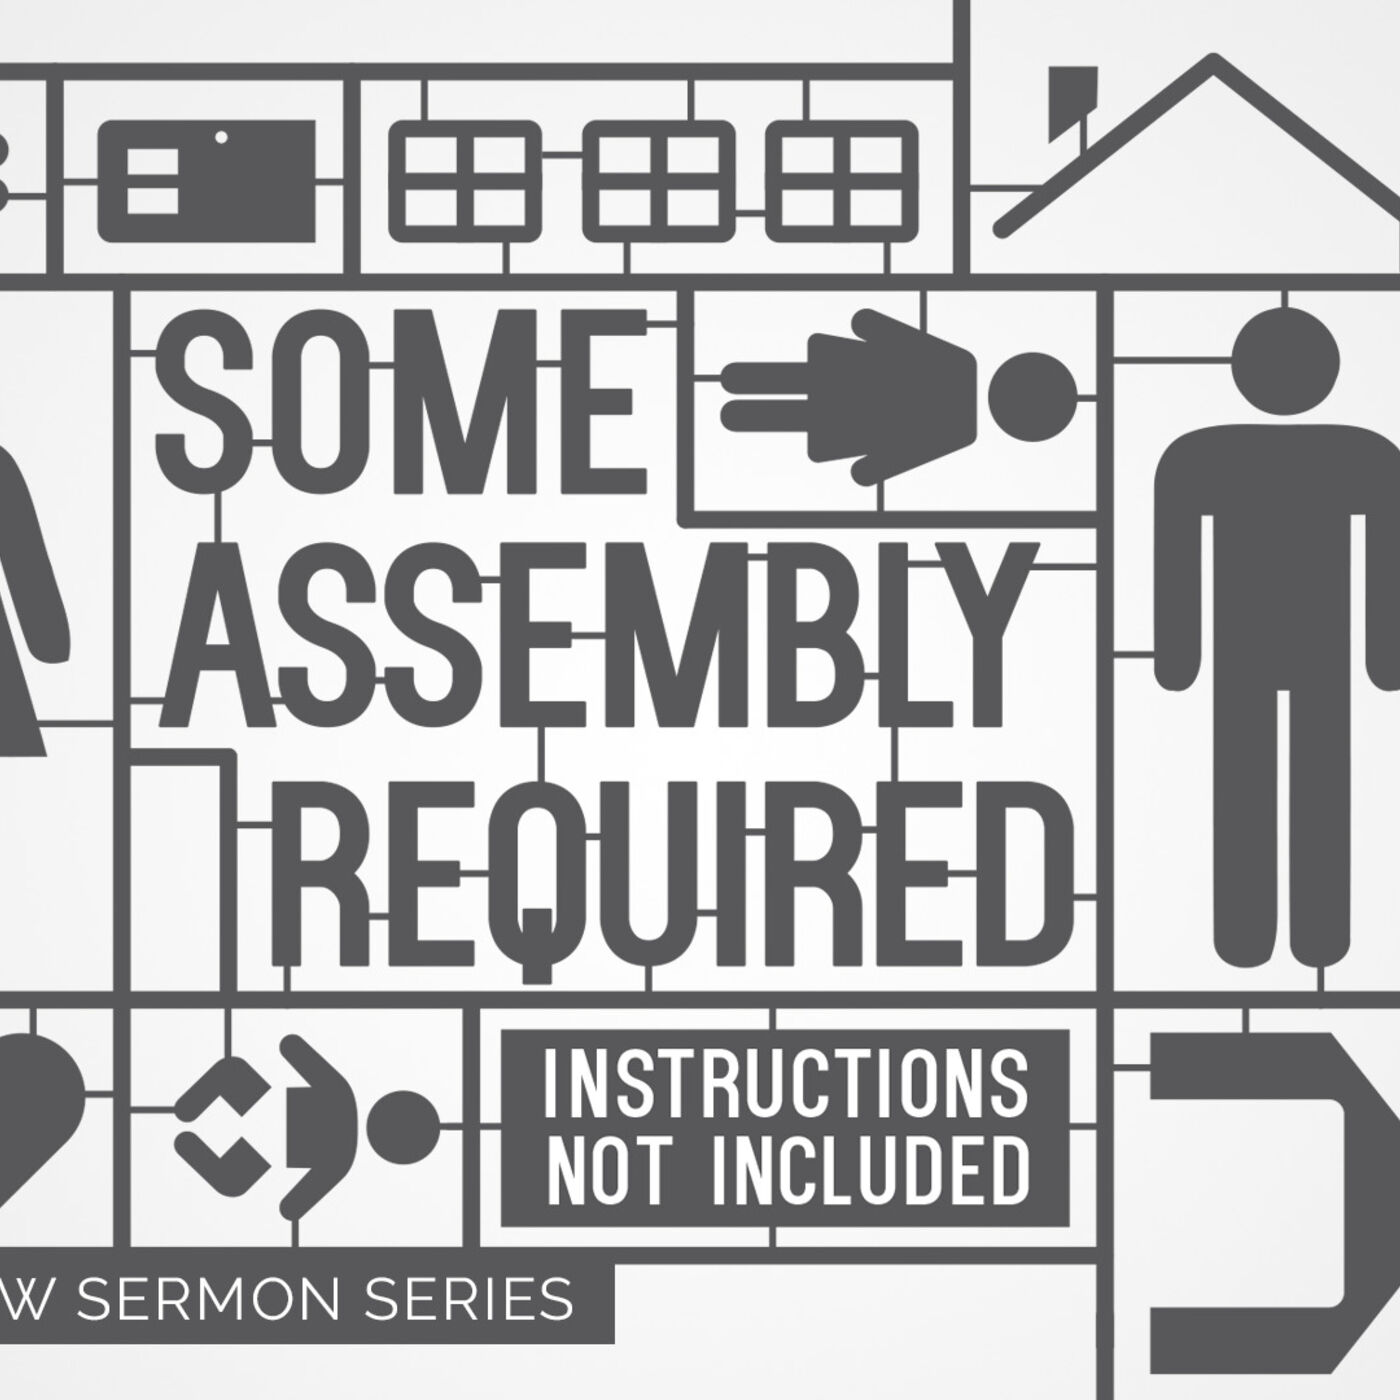 Some Assembly Required Week 2